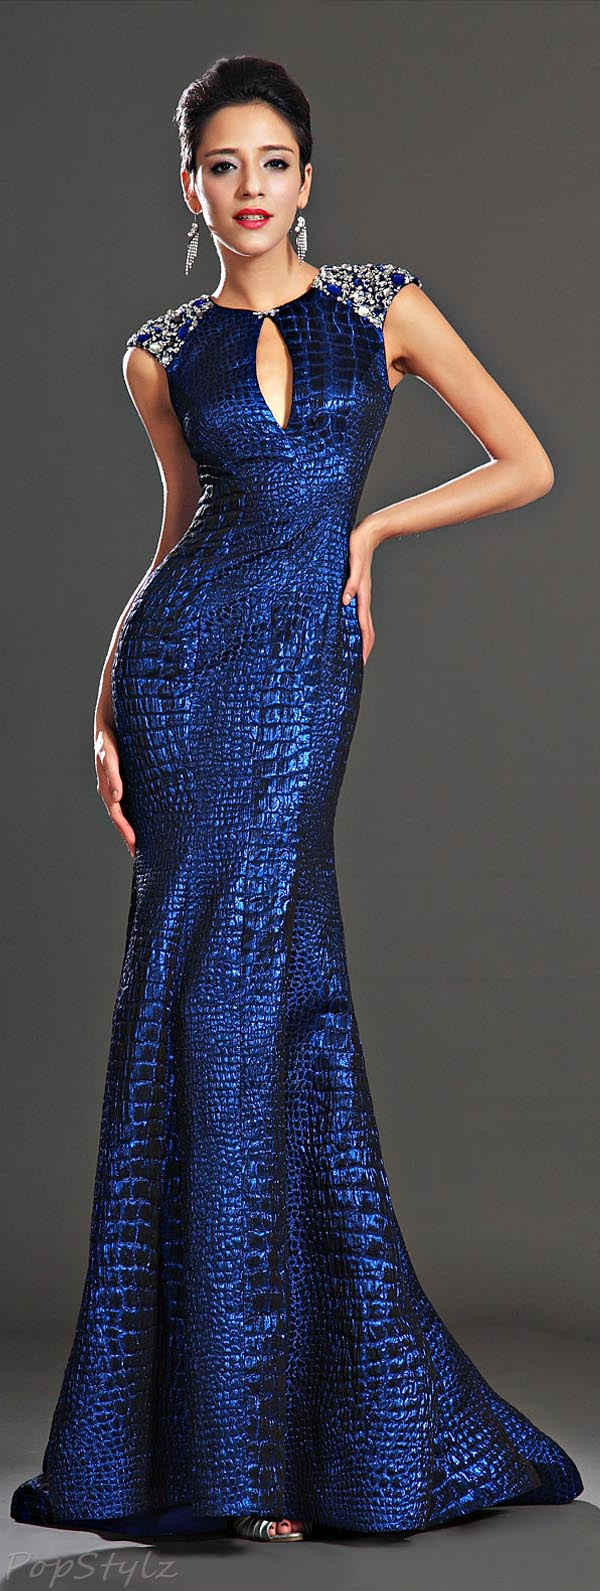 eDressit 02130905 Sapphire Blue Evening Dress